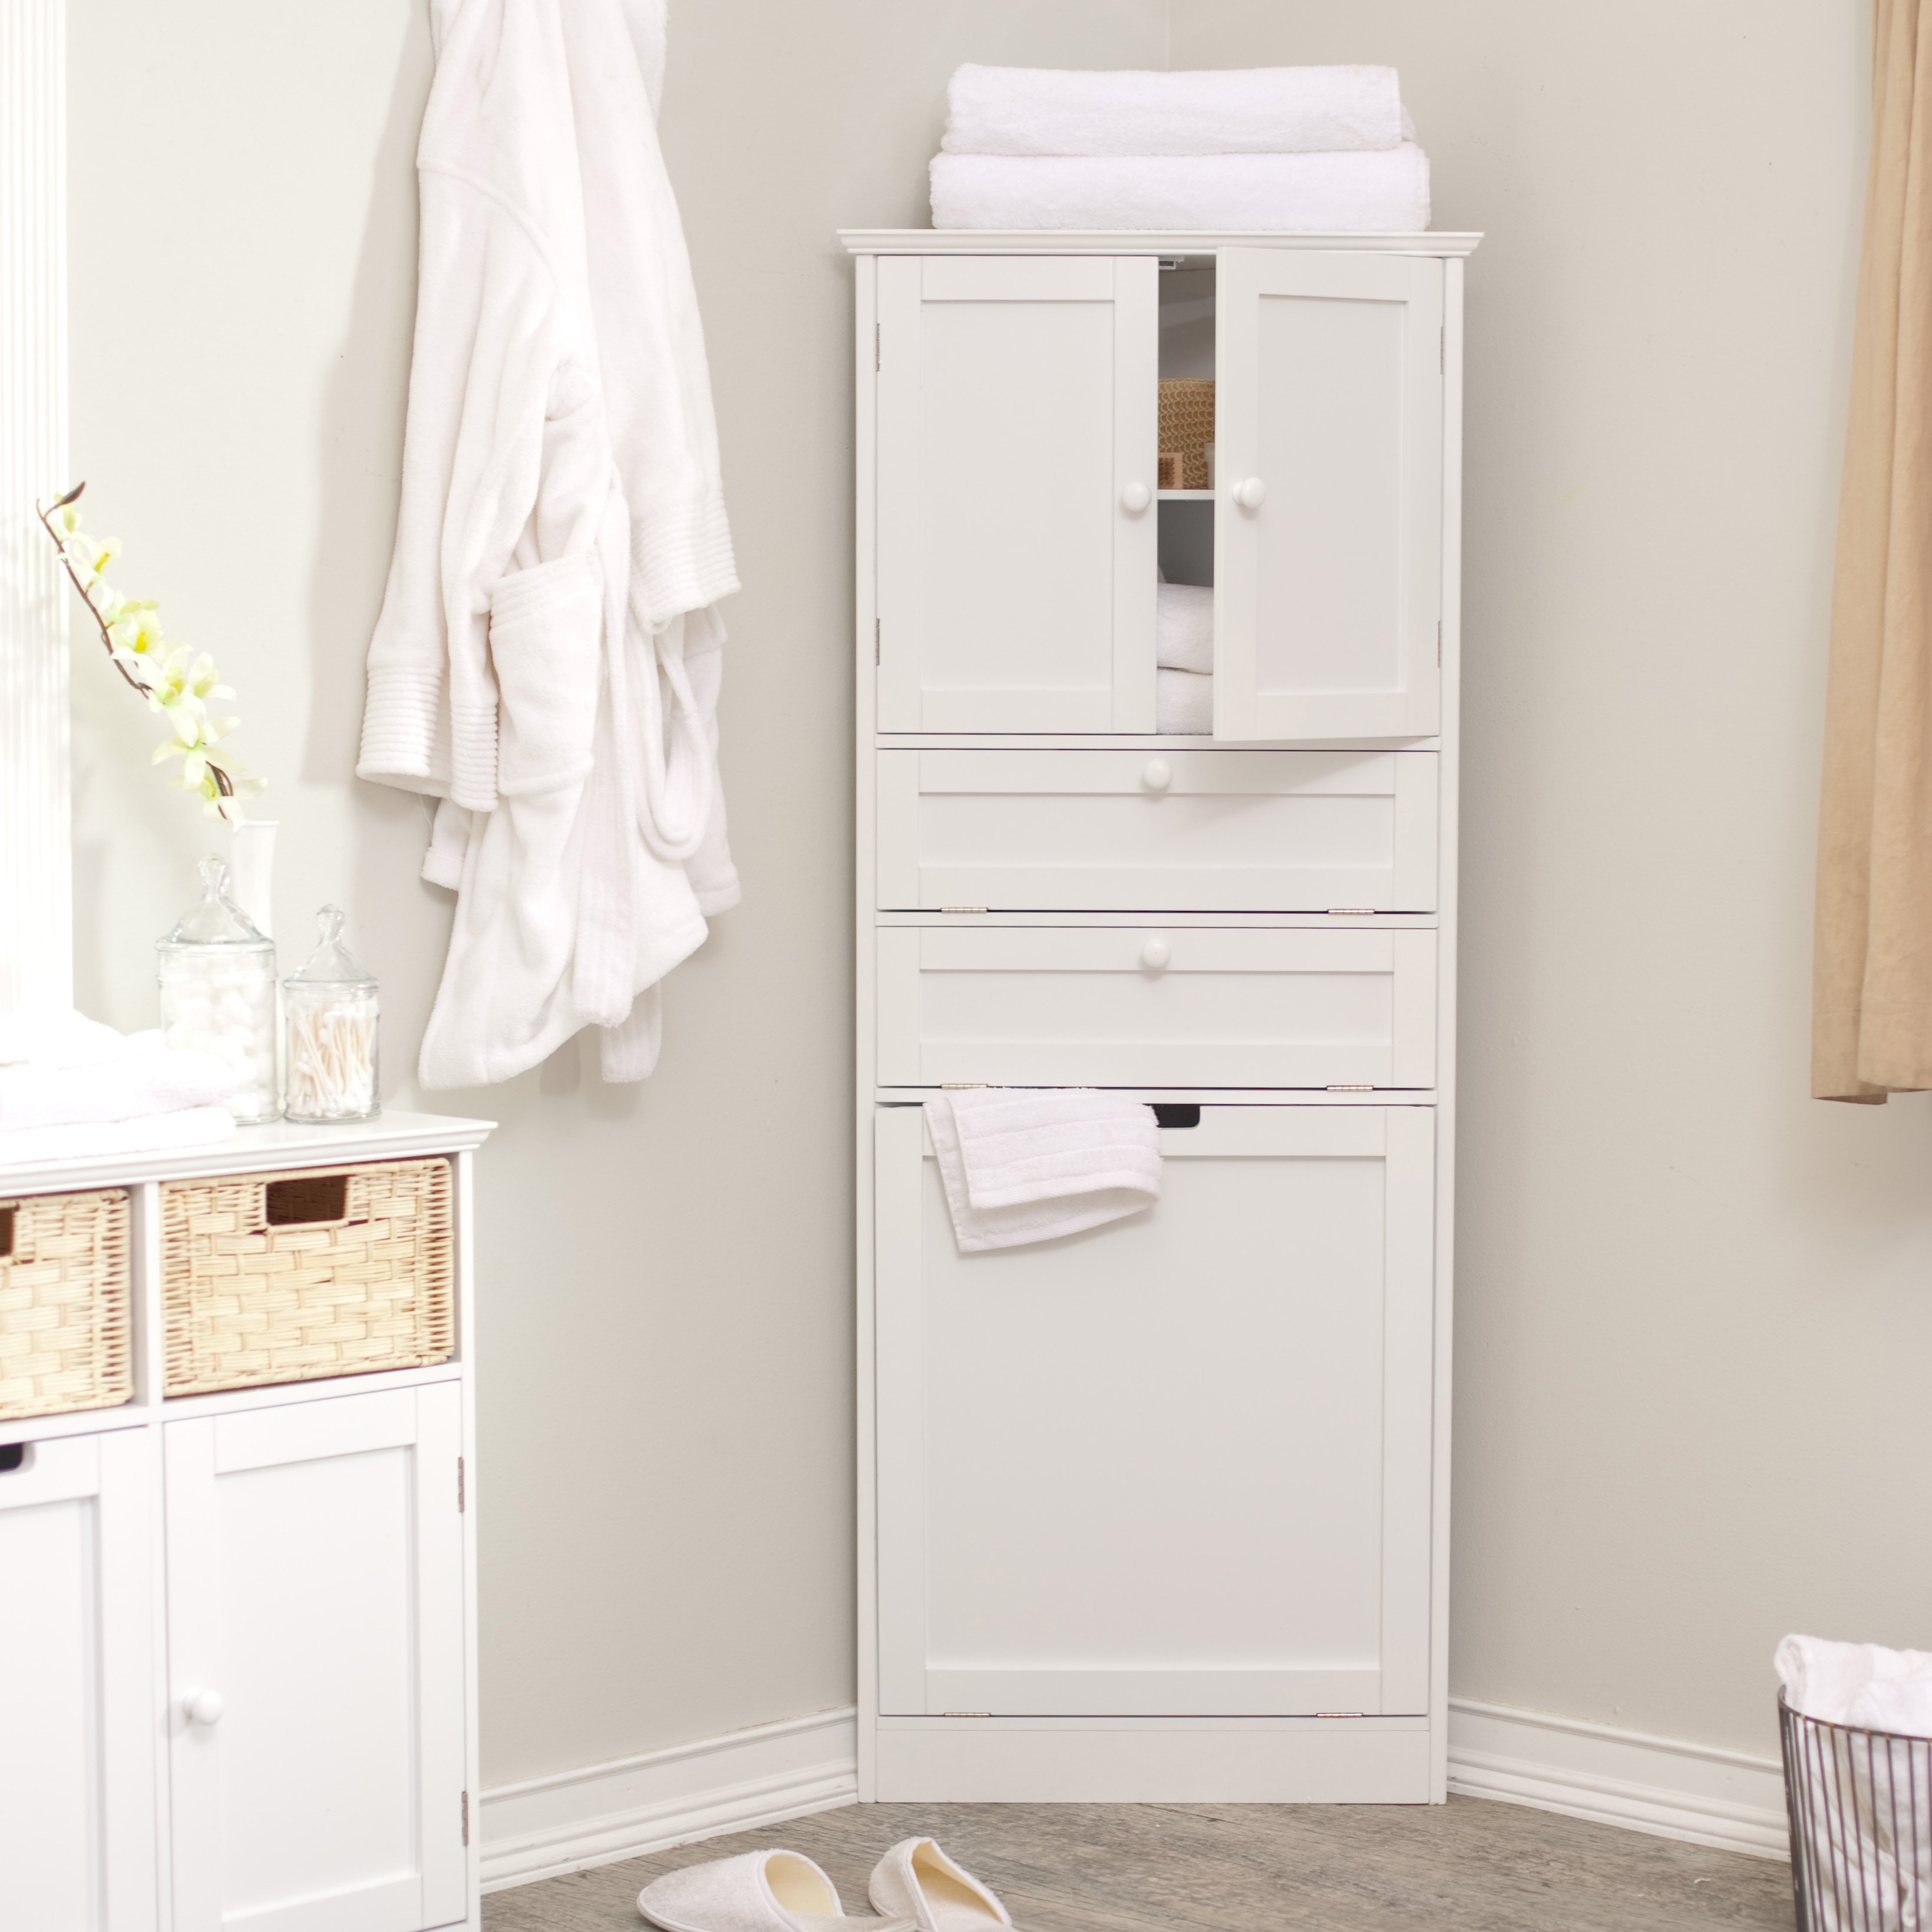 How to use bathroom storage cabinet with drawers